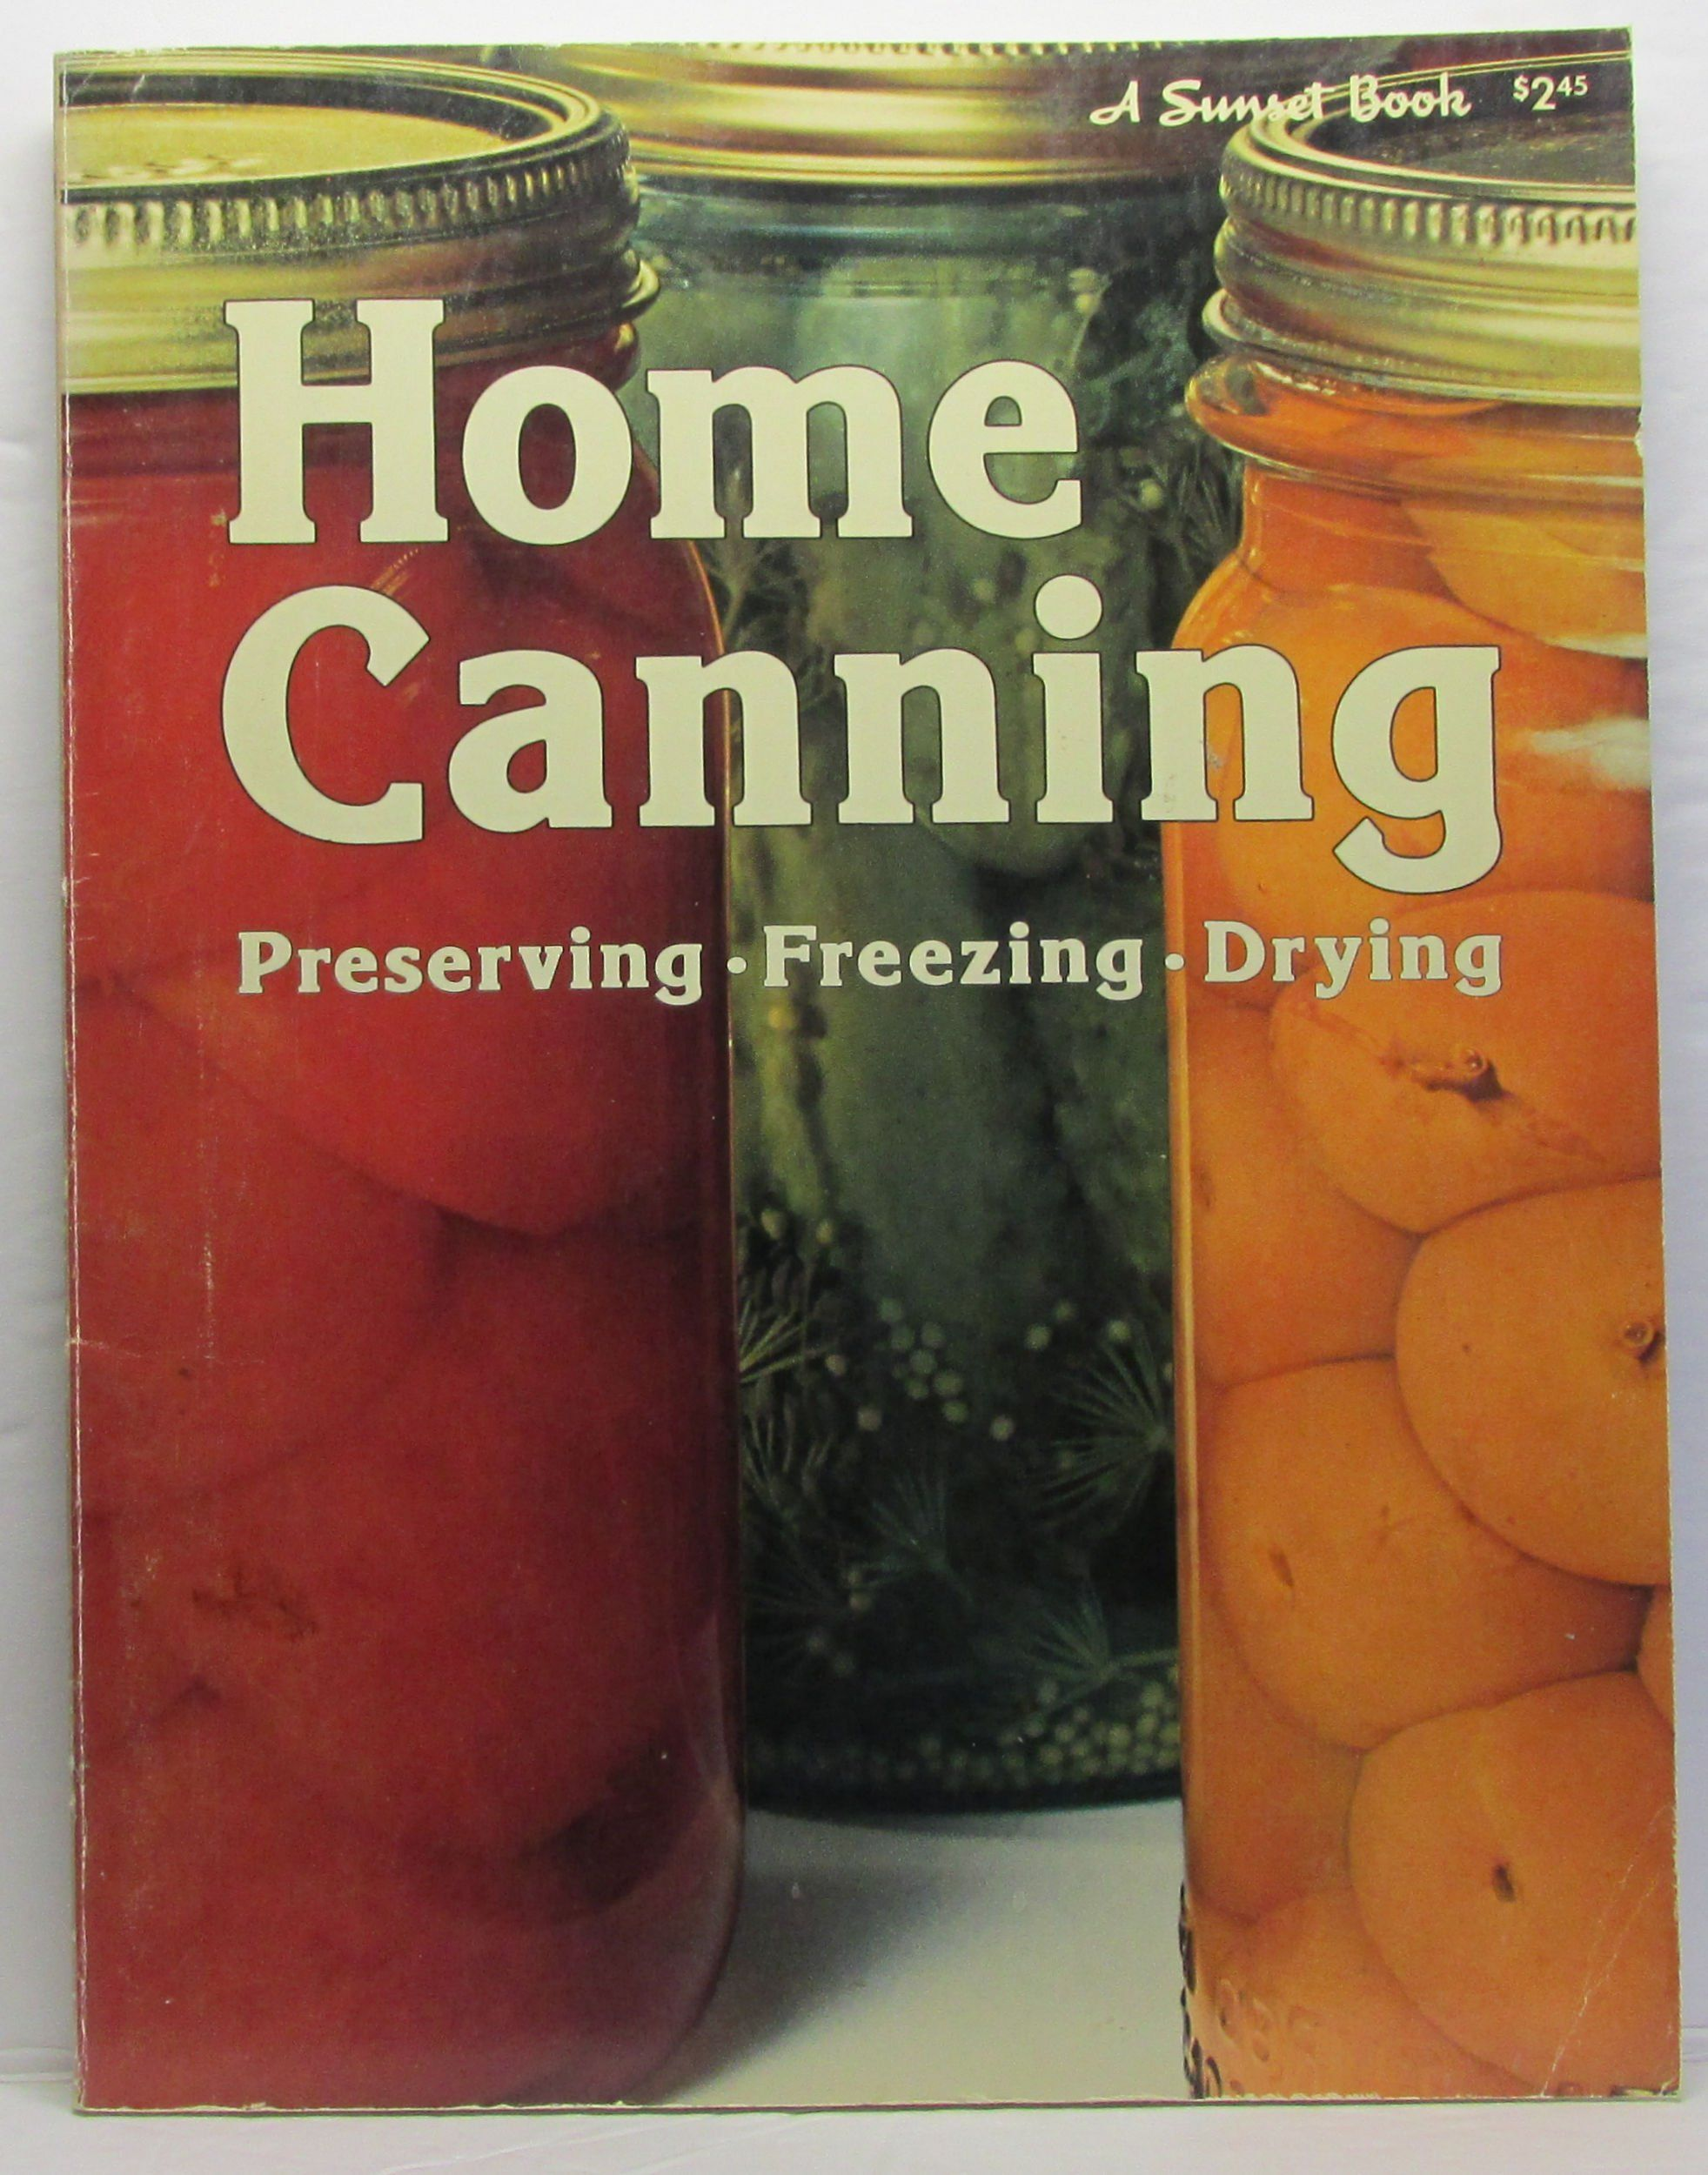 8c7292c514d6debe7b5a5aae9da29c18 - Better Homes And Gardens Complete Canning Guide Freezing Preserving Drying